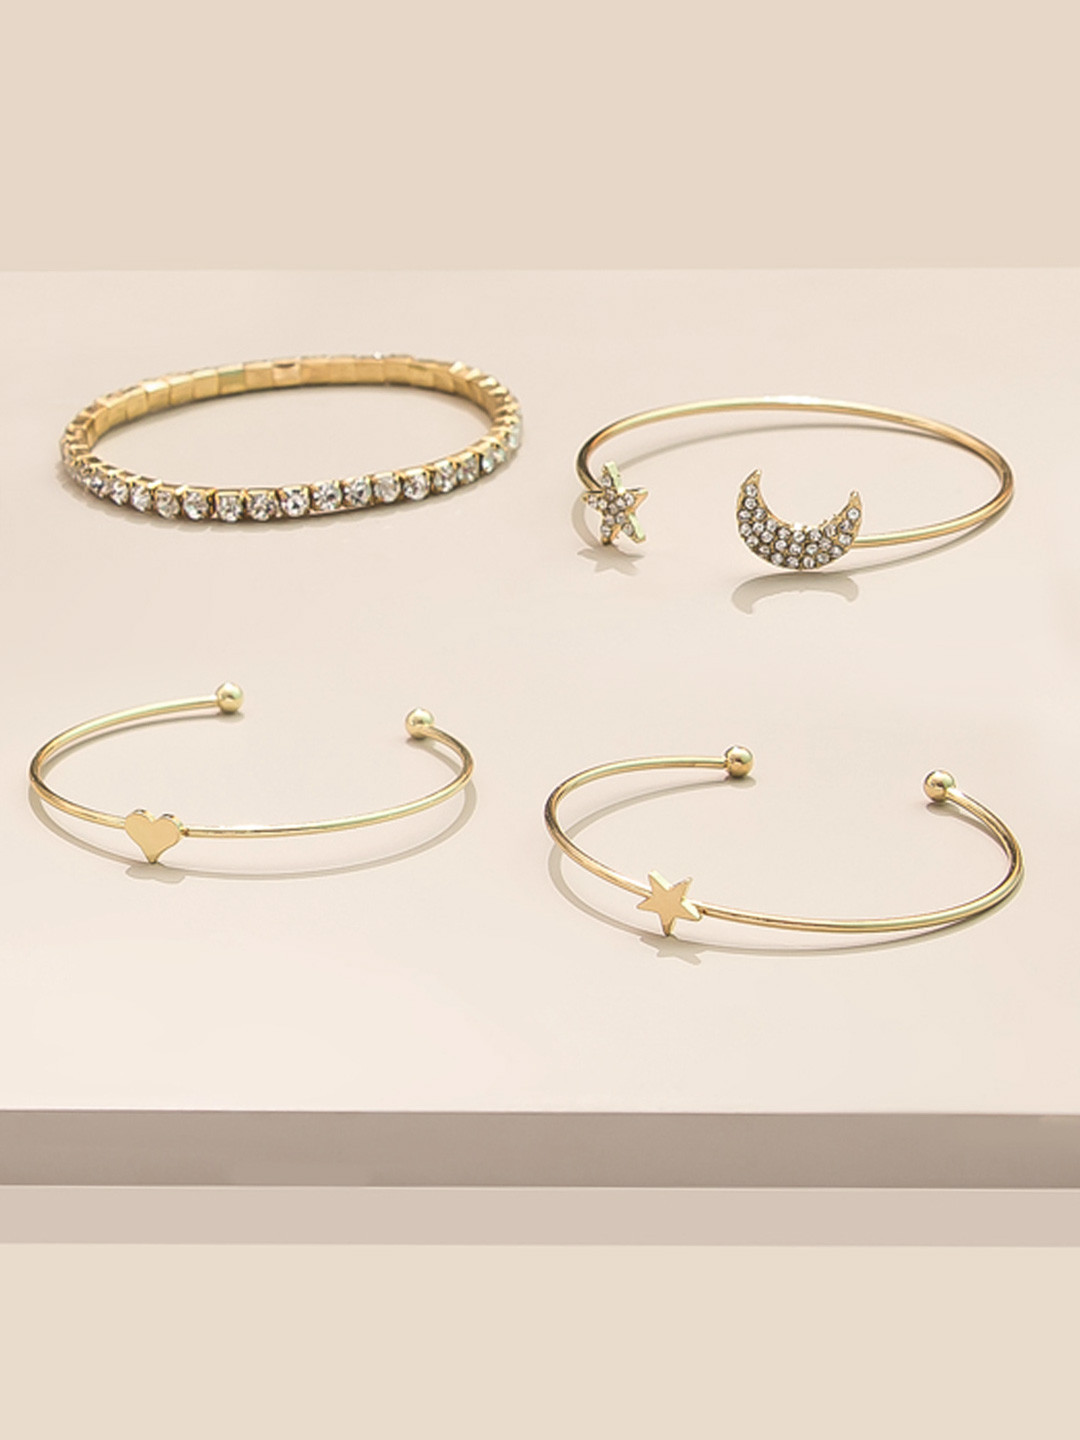 5 pipa bella bracelet set sparkly jewellery diamond